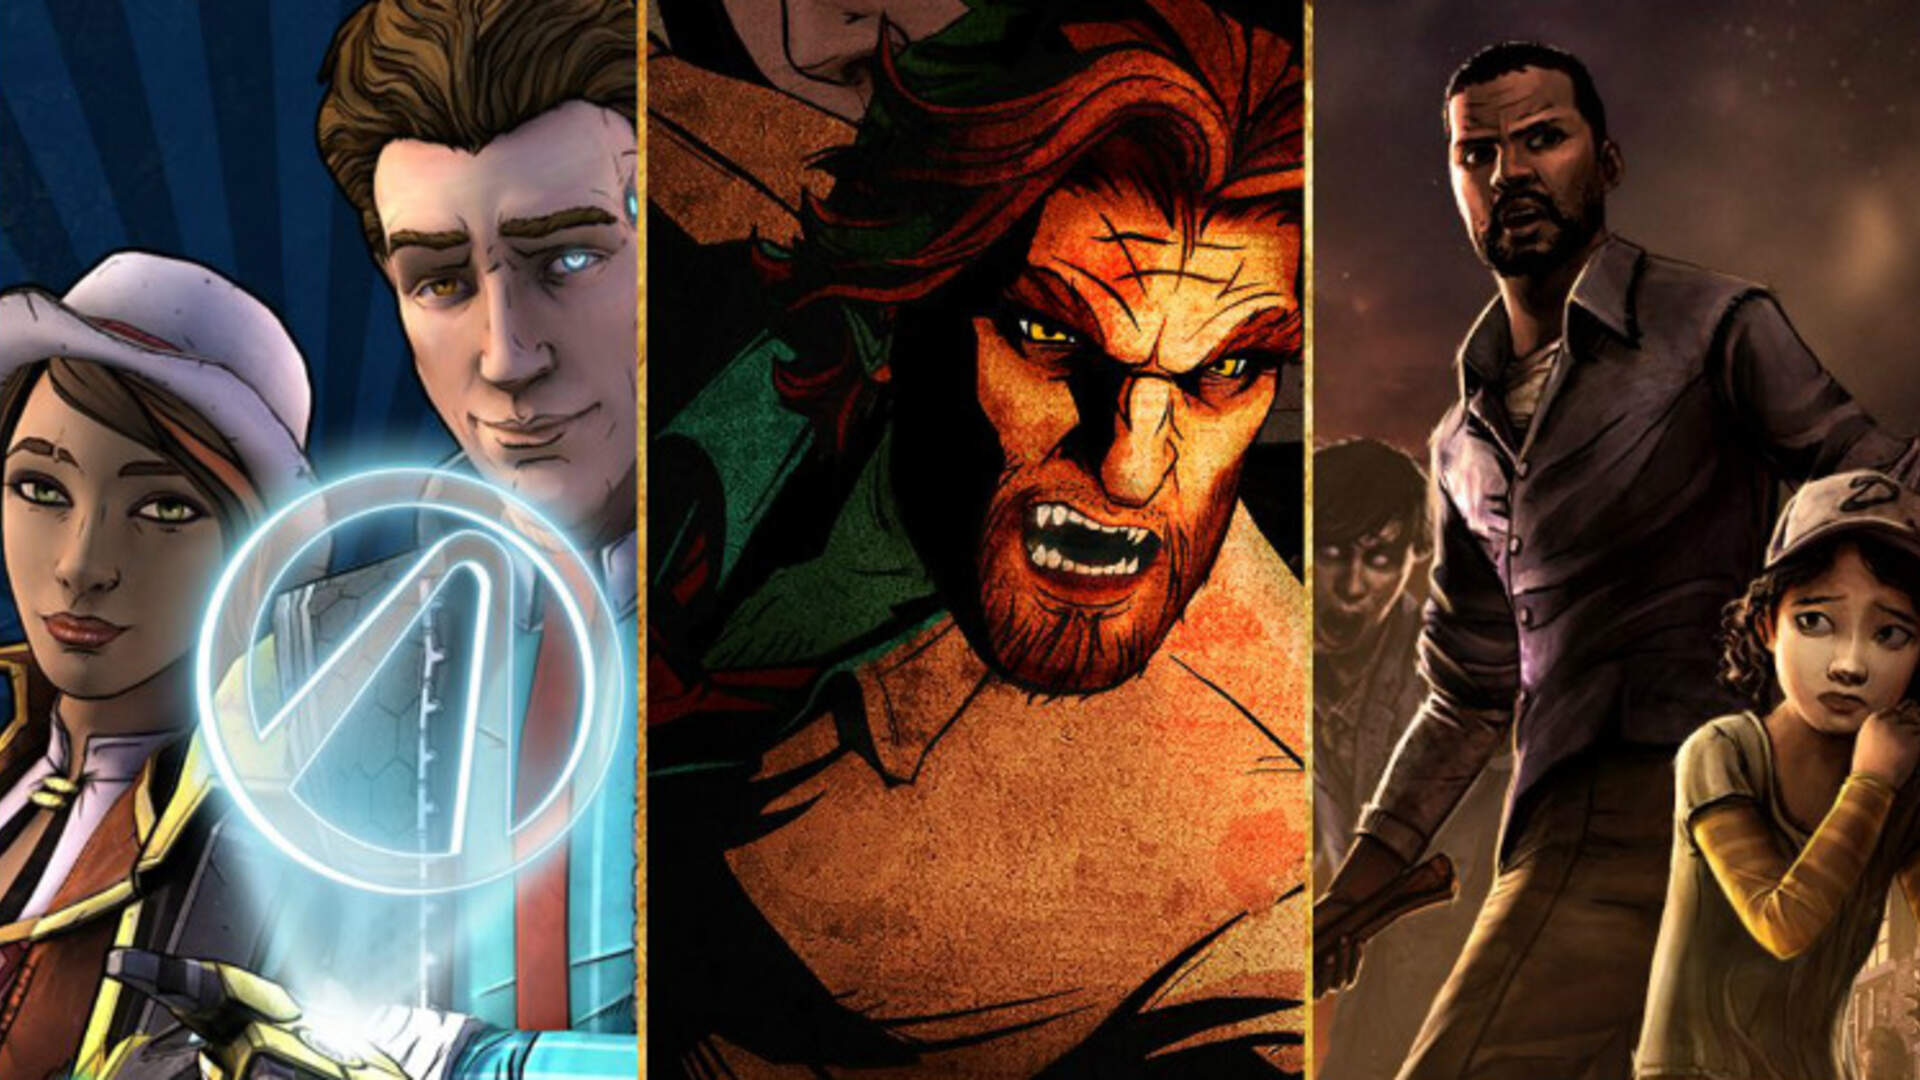 Telltale's Deal with Lionsgate Brings Gaming and TV Together Again